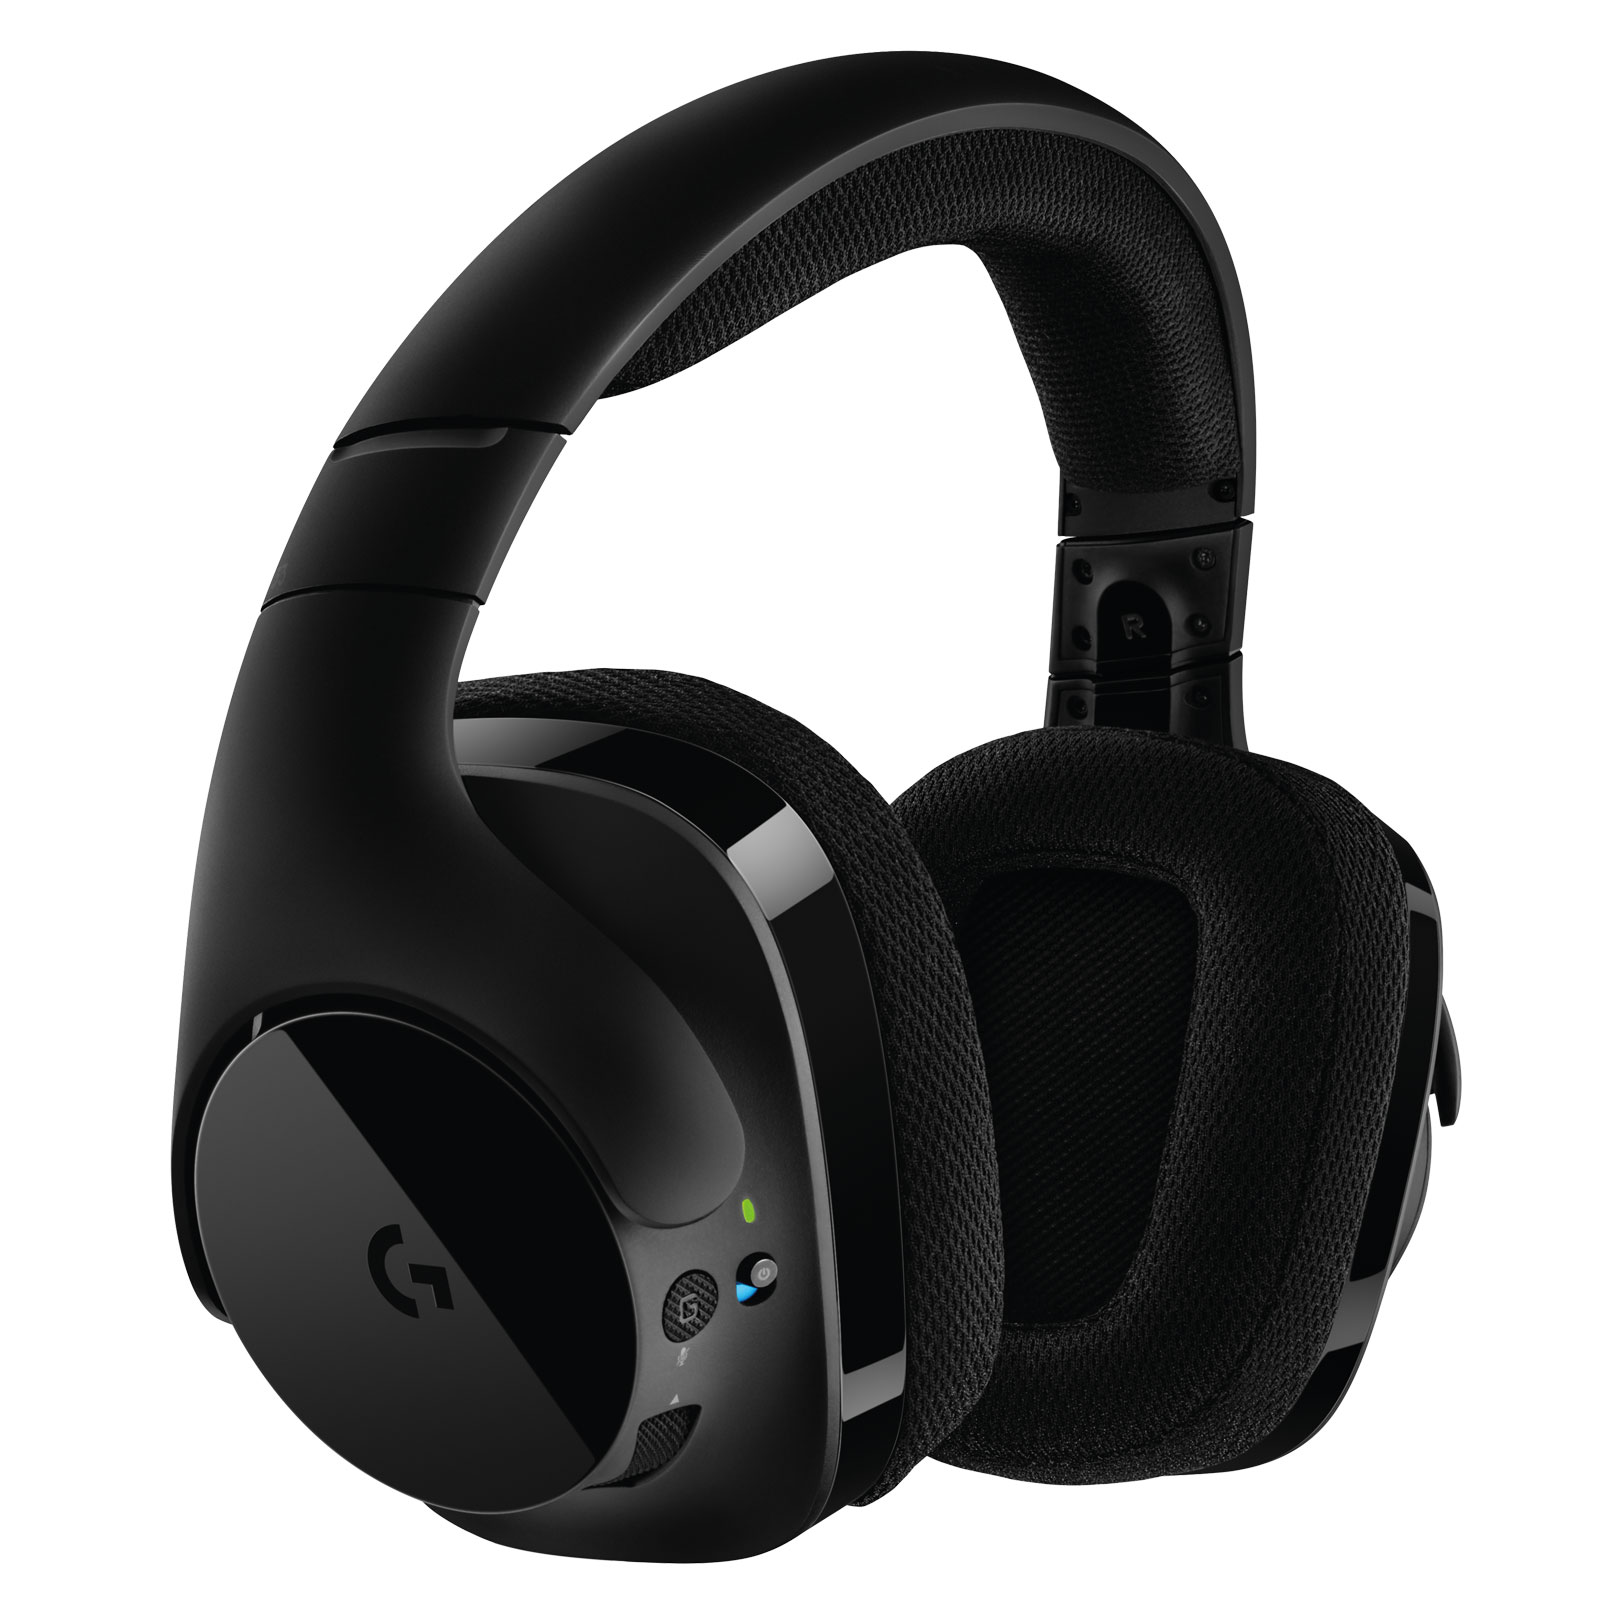 Logitech G533 Prodigy Wireless Gaming Headset 7.1 Surround - Micro-casque - 2